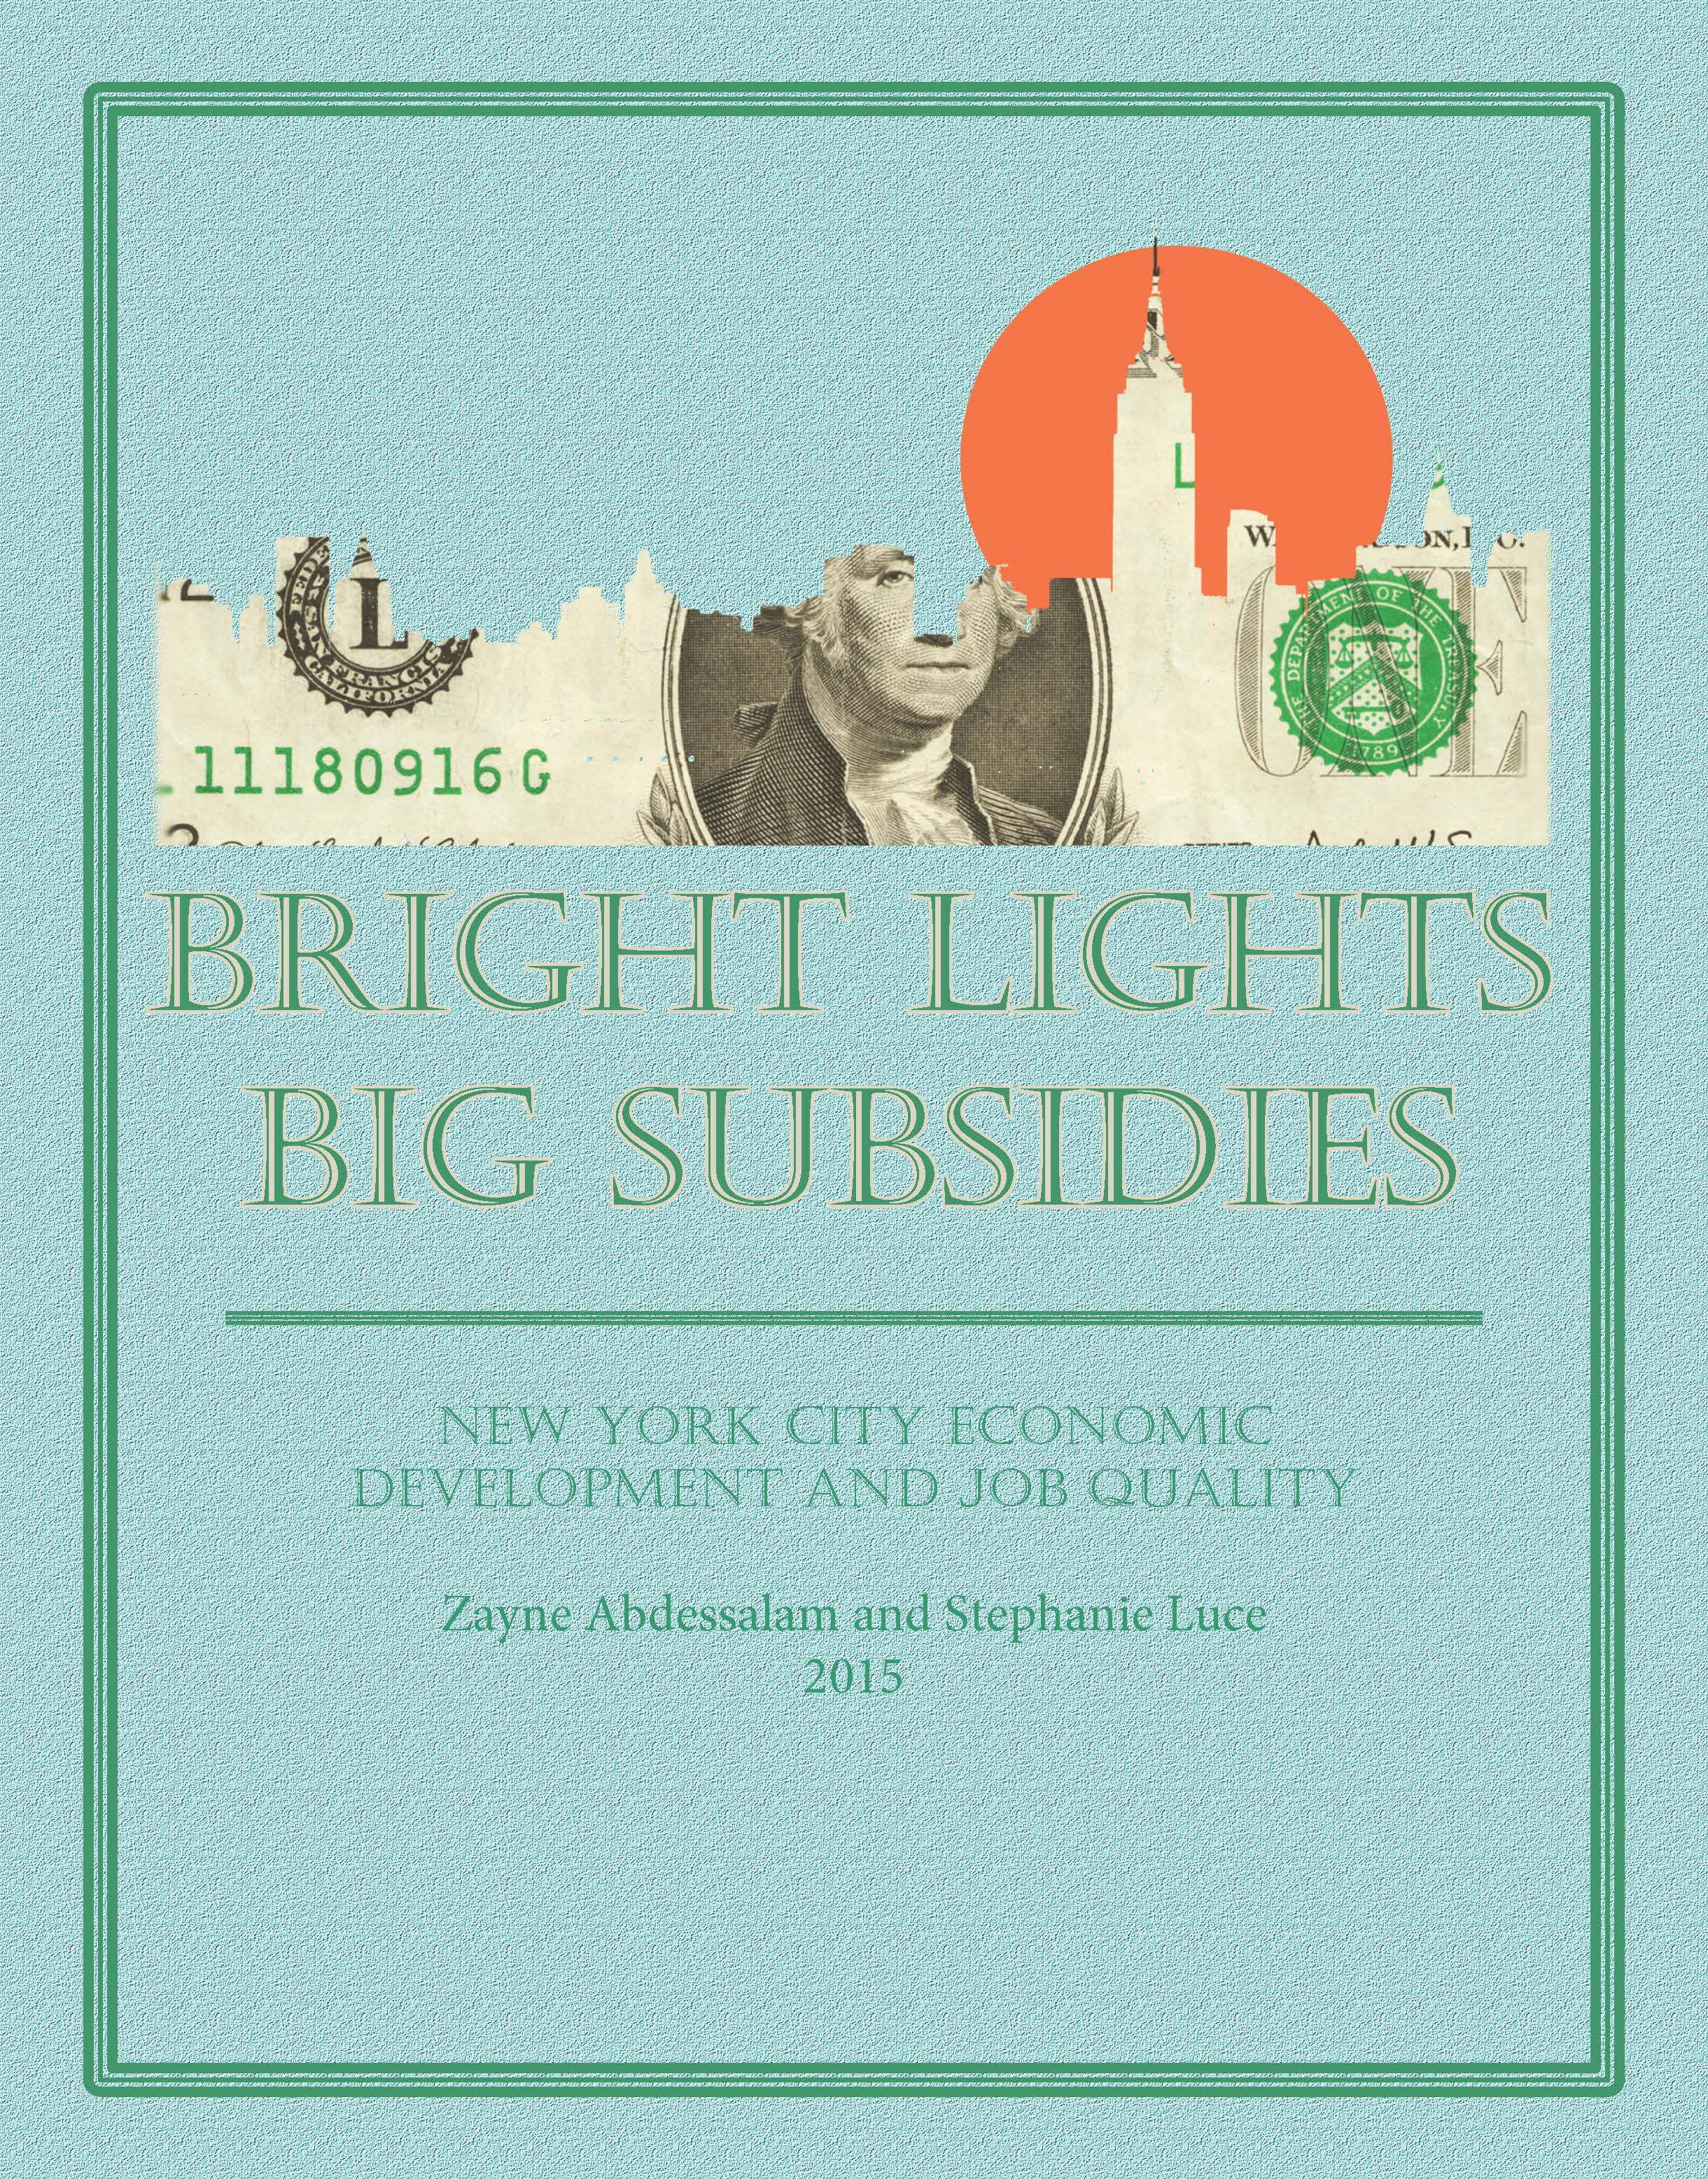 Subsidy report cover